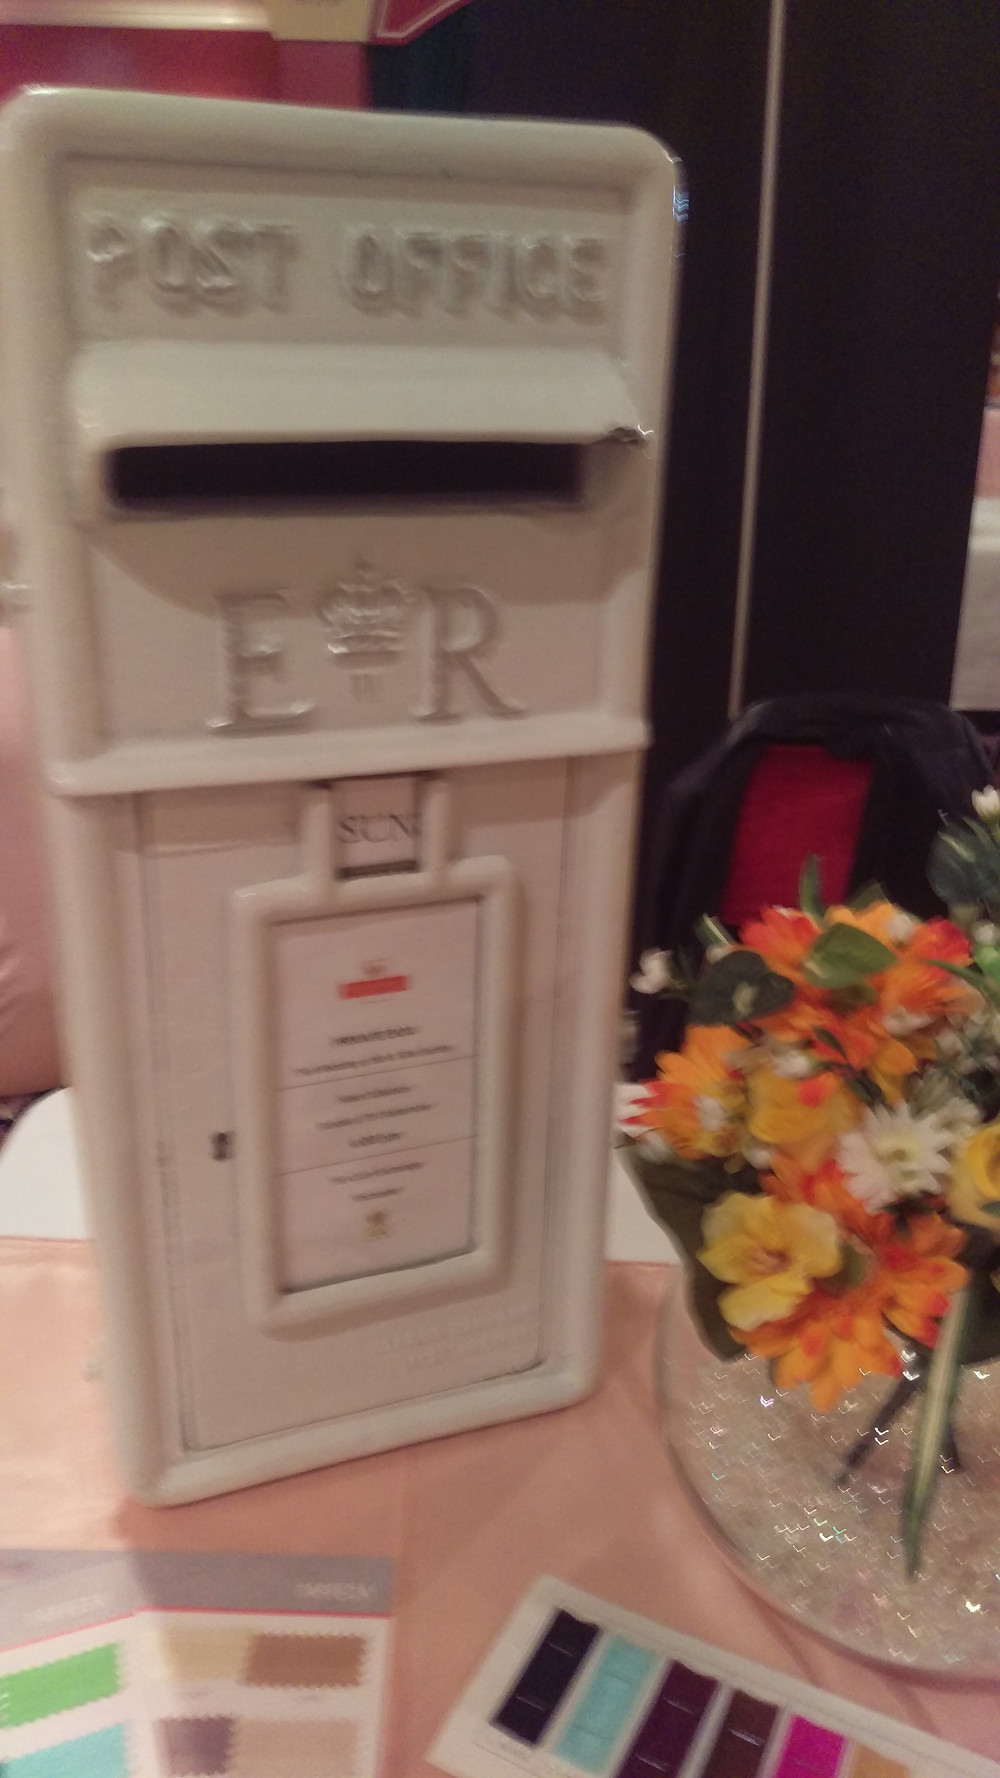 Cast Iron Genuine E+R Wedding Post Box Wedding Venue Table Decoration by Embellish Venue Styling Kent Finishing Touches Replica - www.embellishvenuestyling.uk